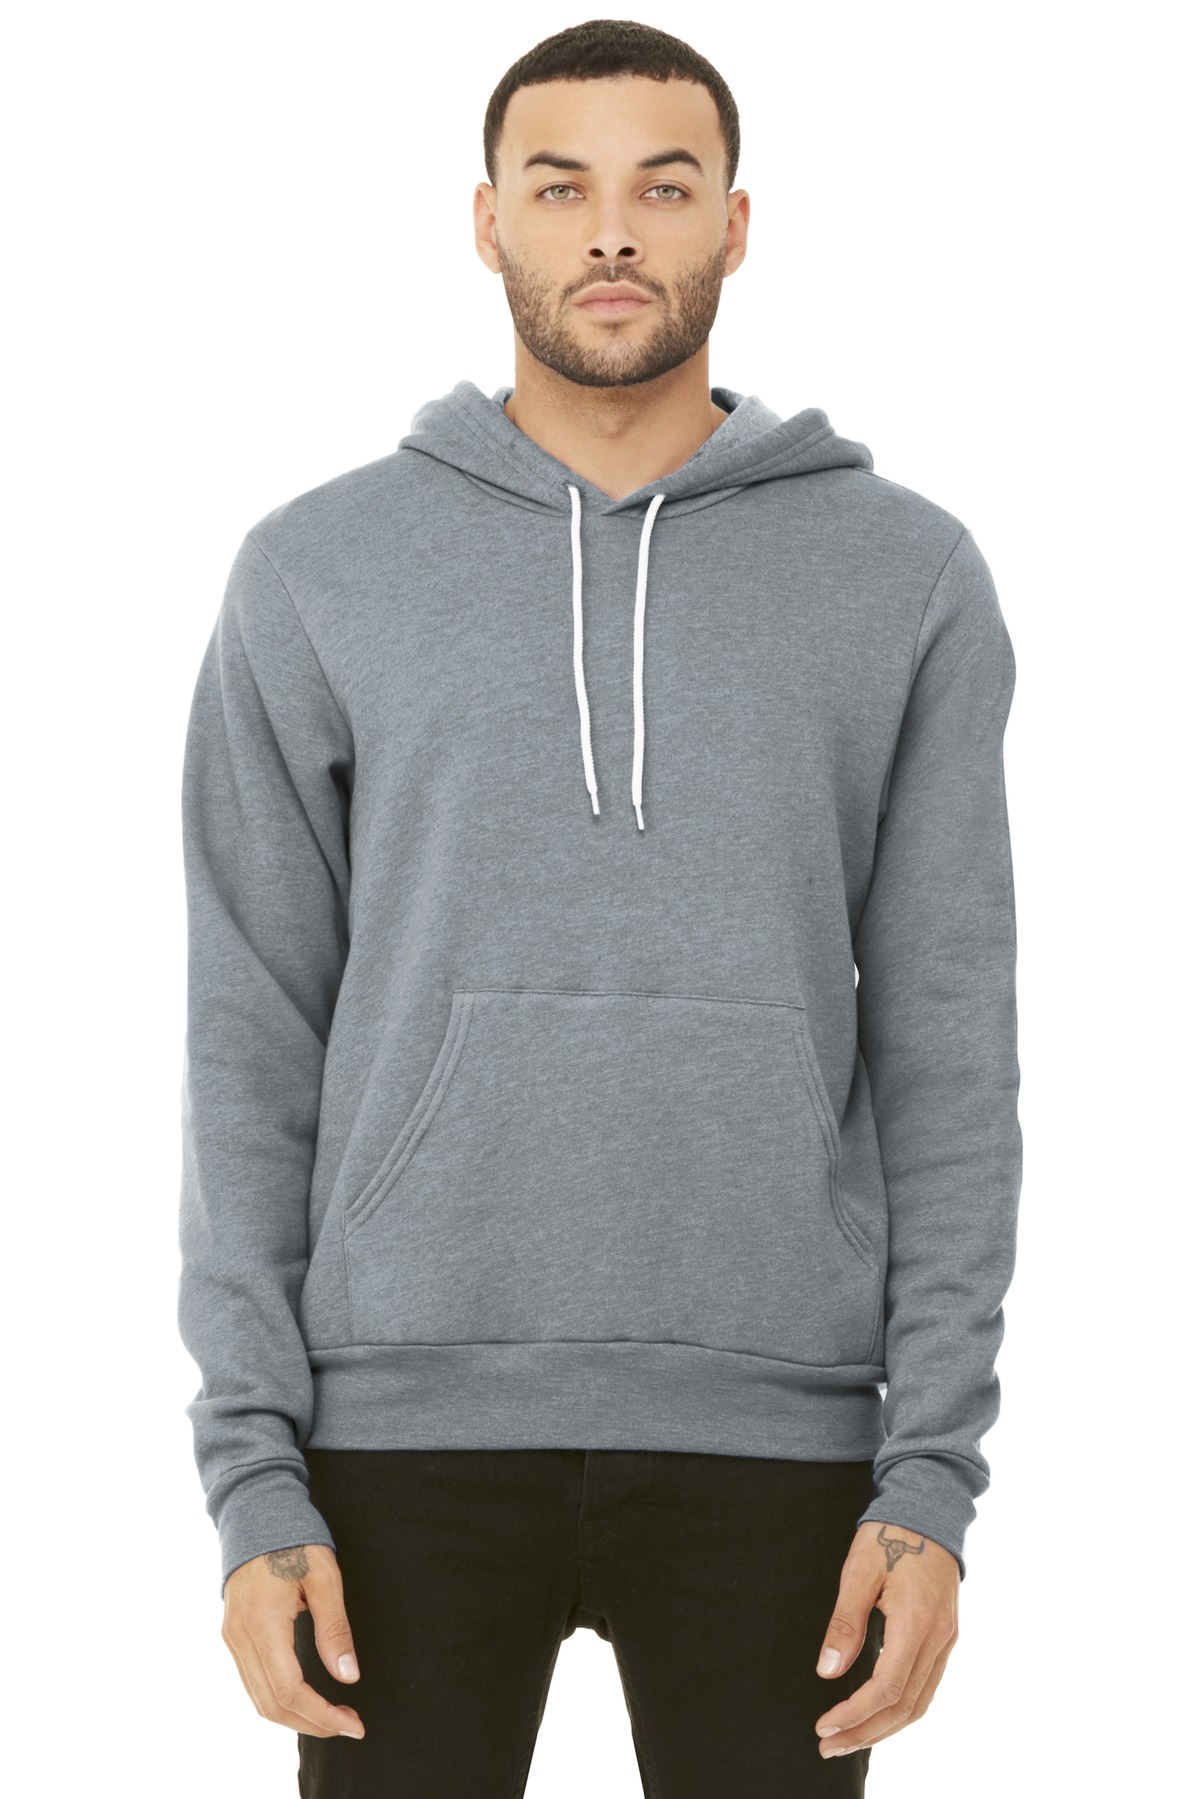 BELLA+CANVAS  ®  Unisex Sponge Fleece Pullover Hoodie. BC3719 - Athletic Heather